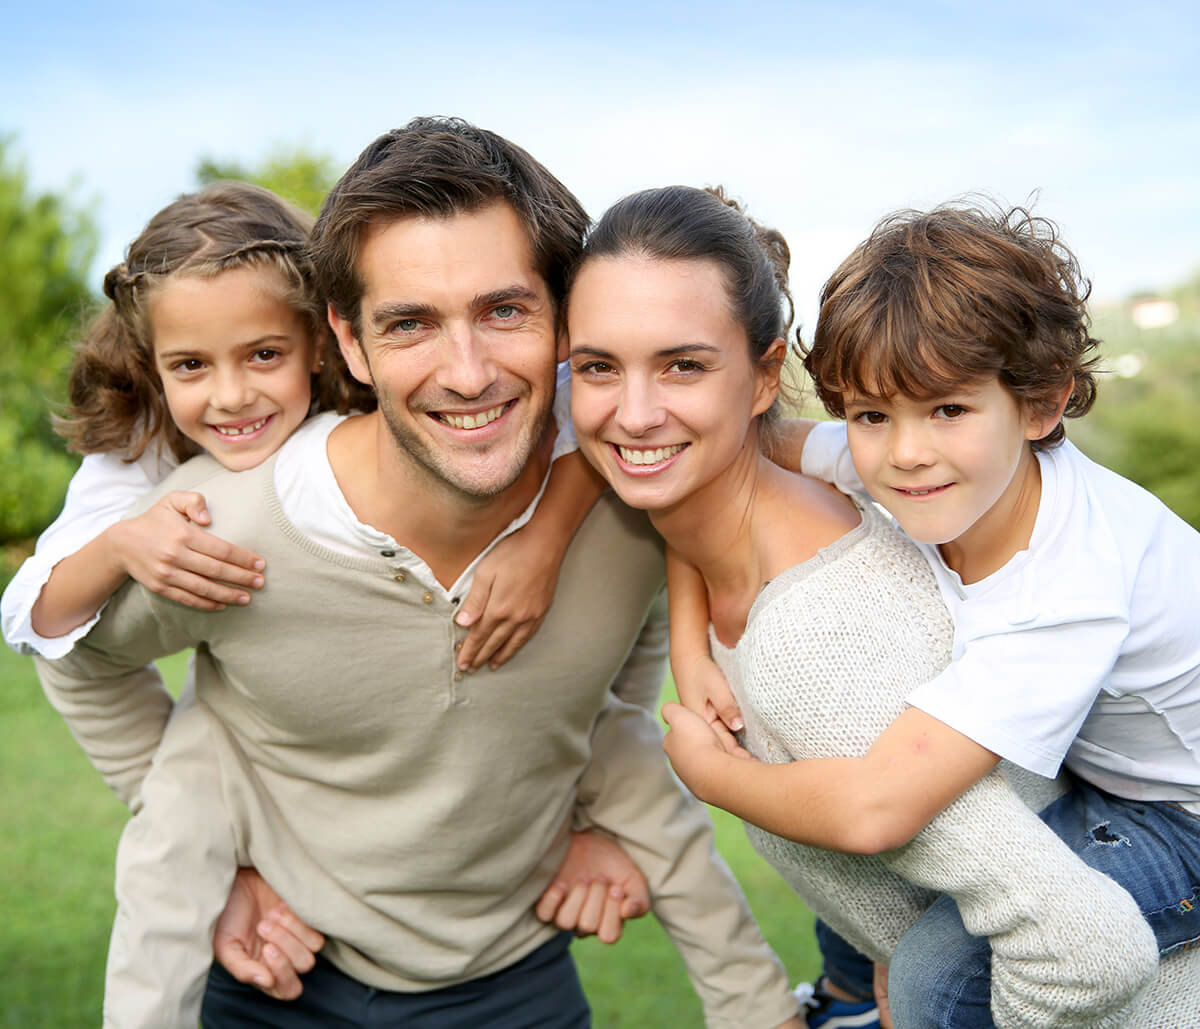 Dentist for Family at Bright Smiles Dental Studio in Glendale CA Area